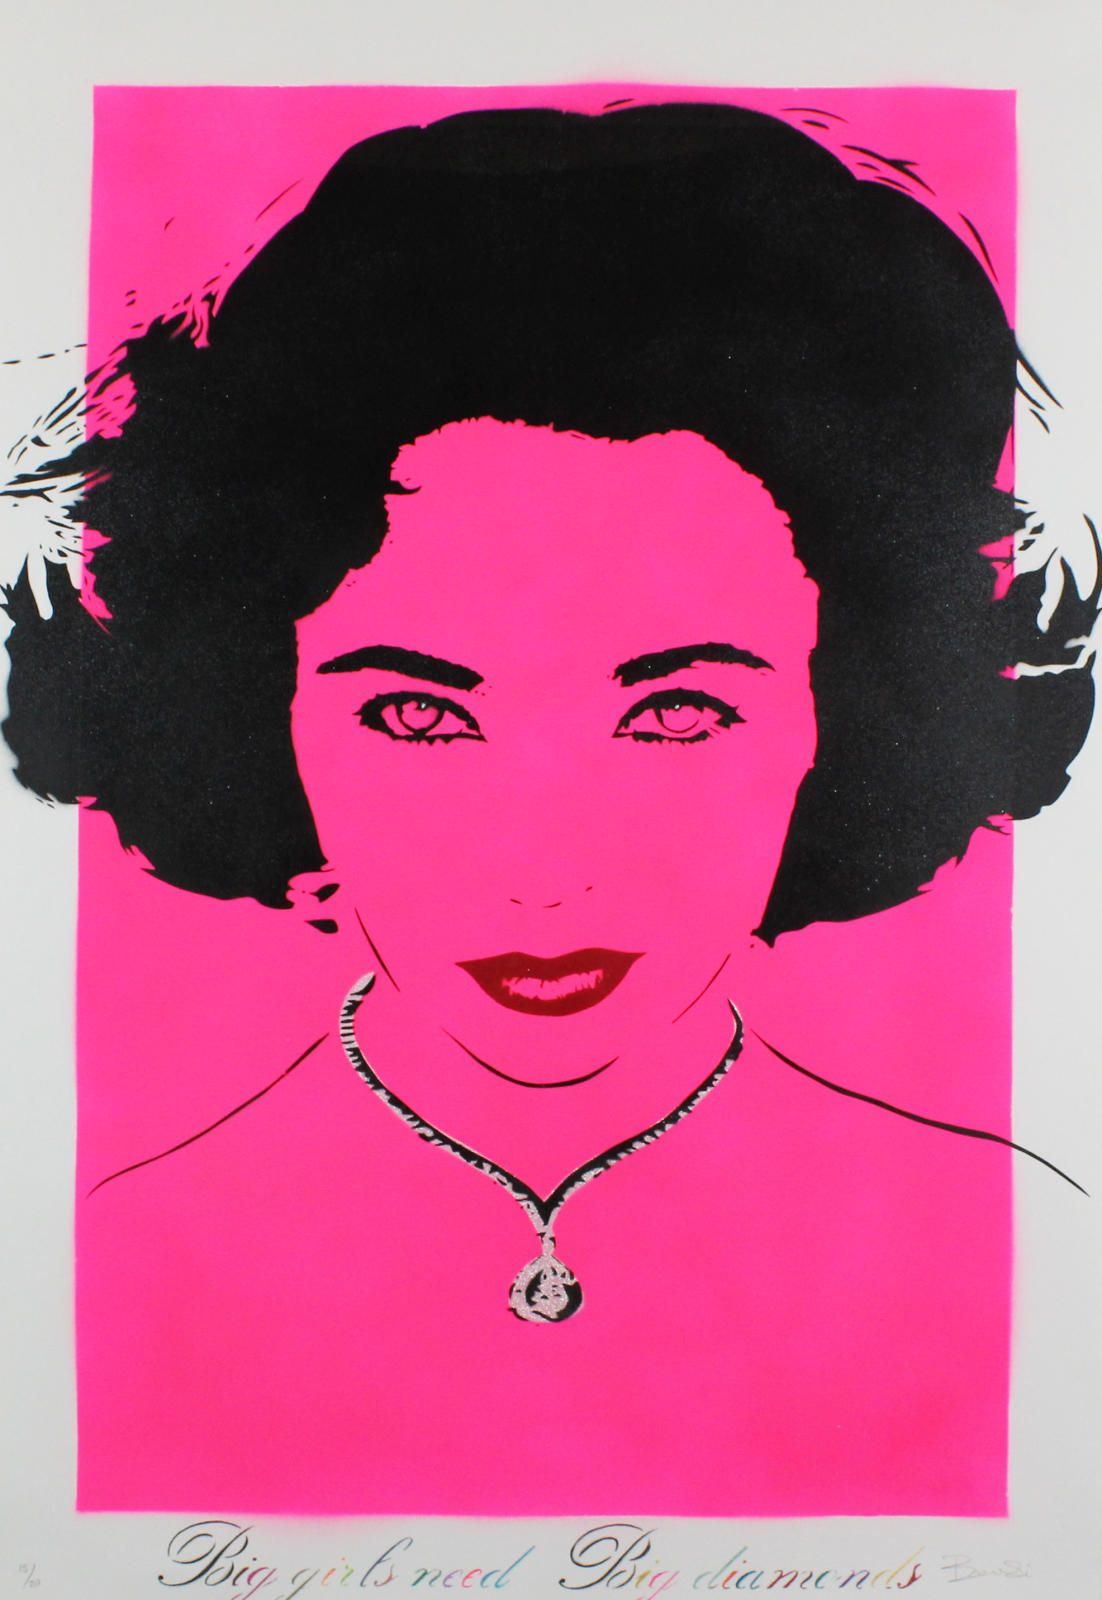 Big Girls Need Big Diamonds (Liz Taylor - Pink)